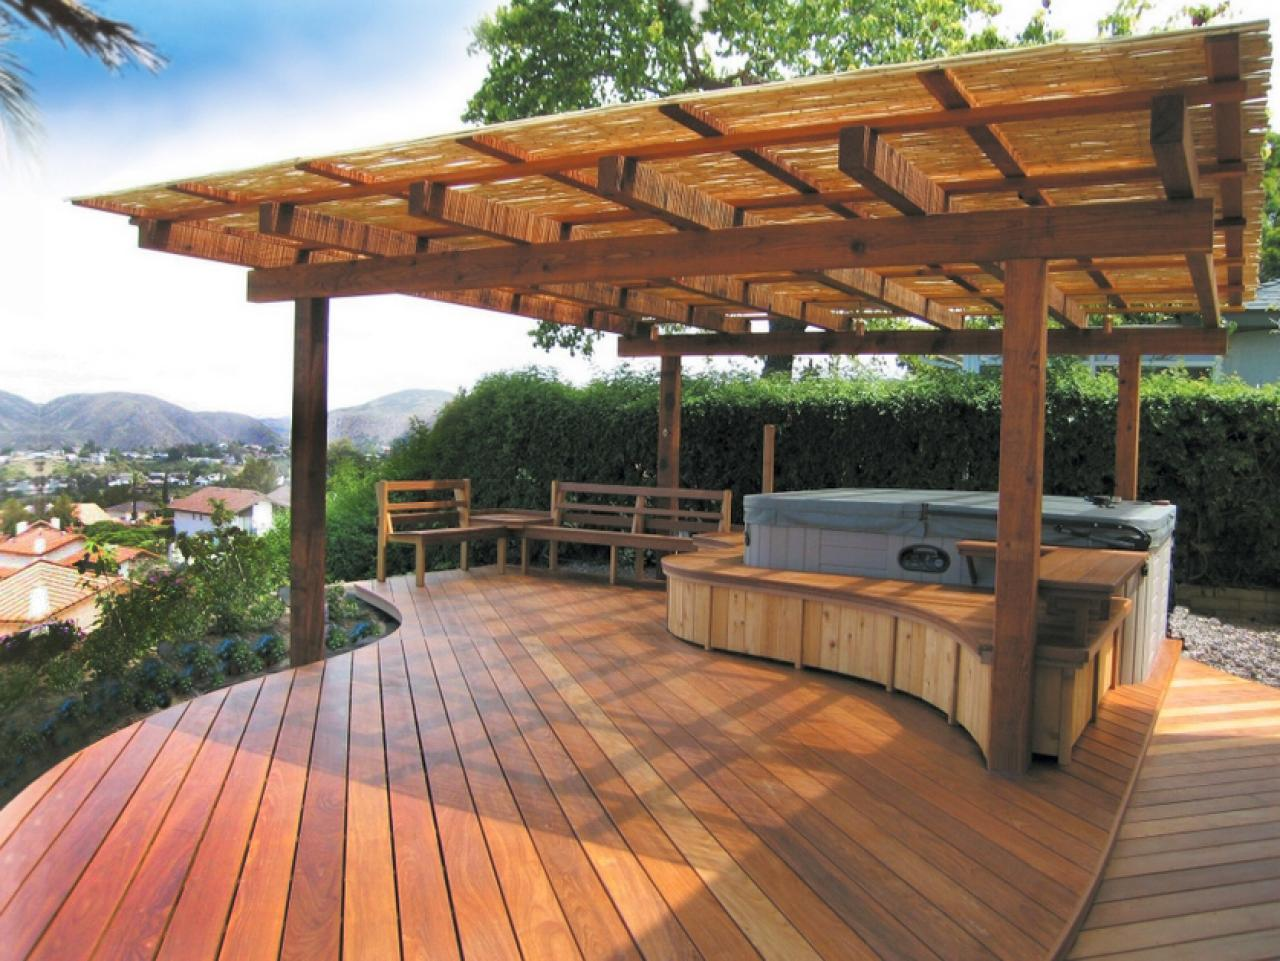 deck designs: ideas & pictures | hgtv - Deck Patio Designs